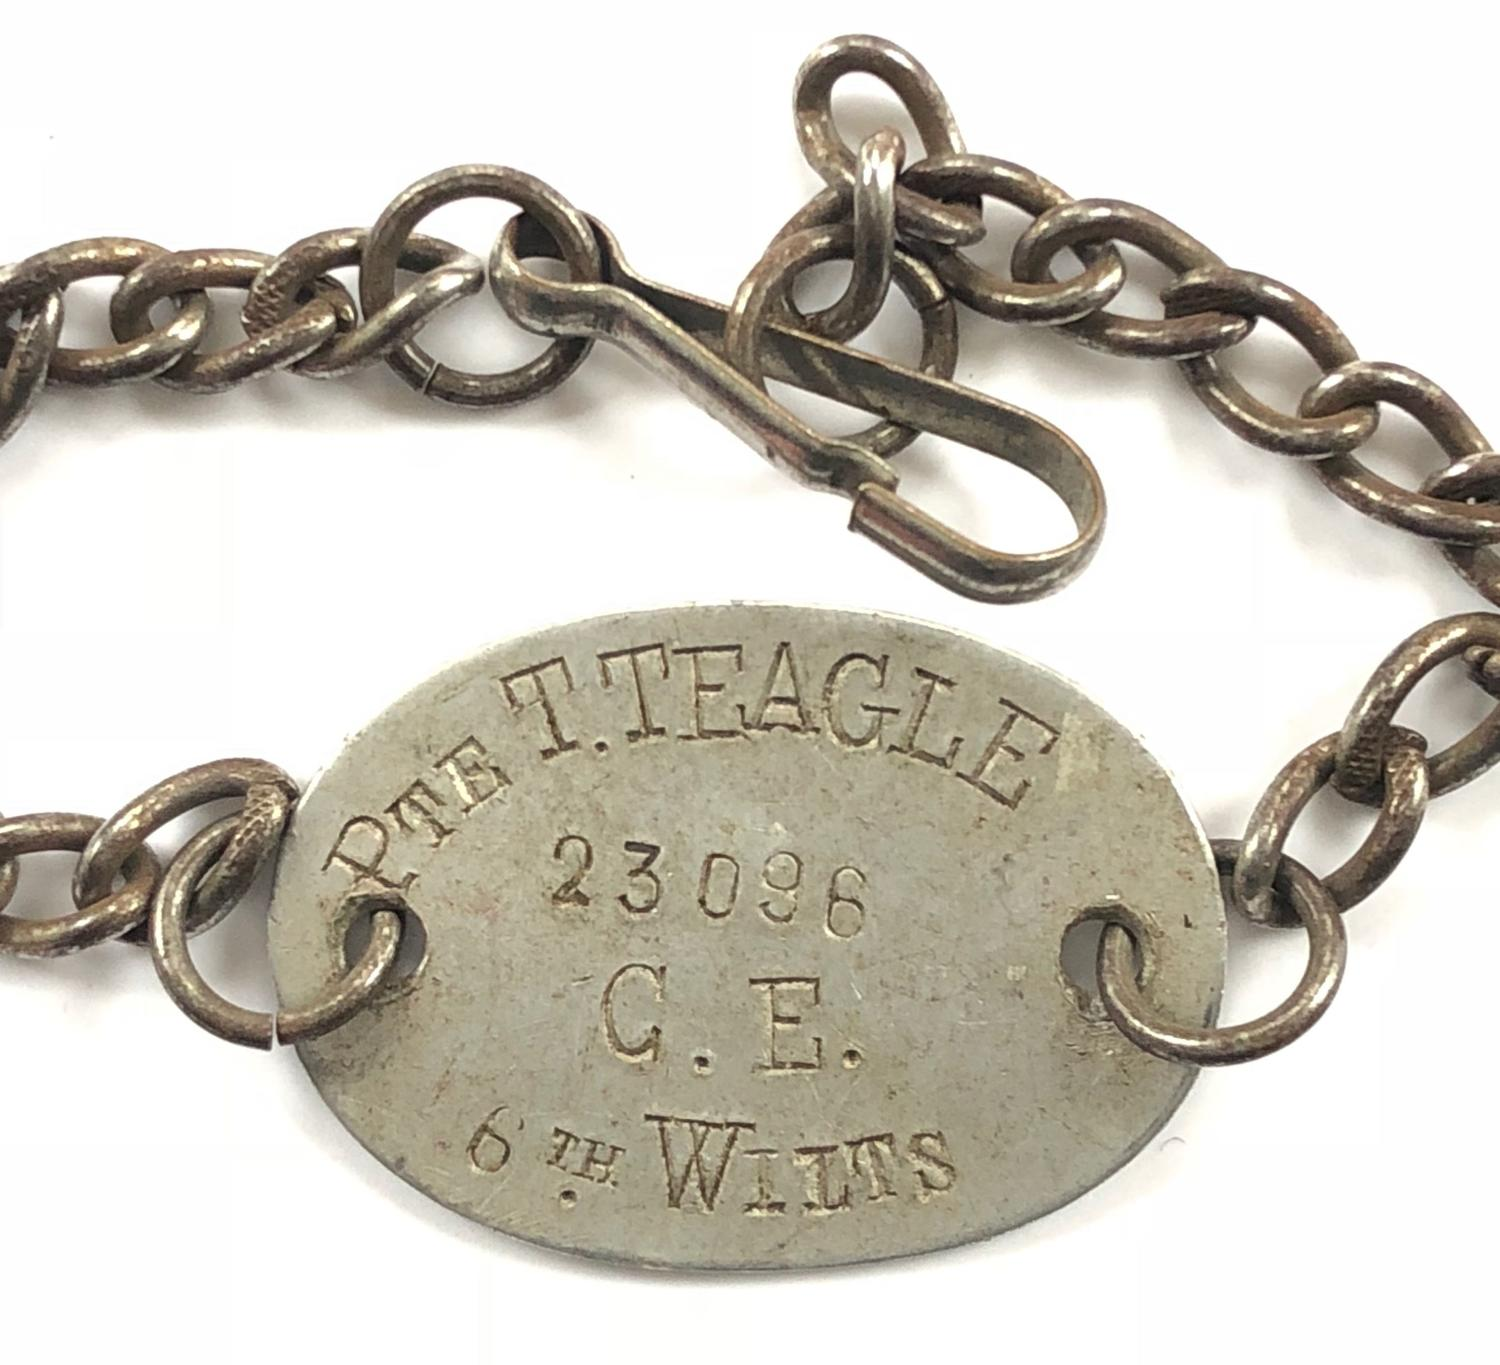 WW1 6th BN Wiltshire Regiment Personal ID Bracelet.